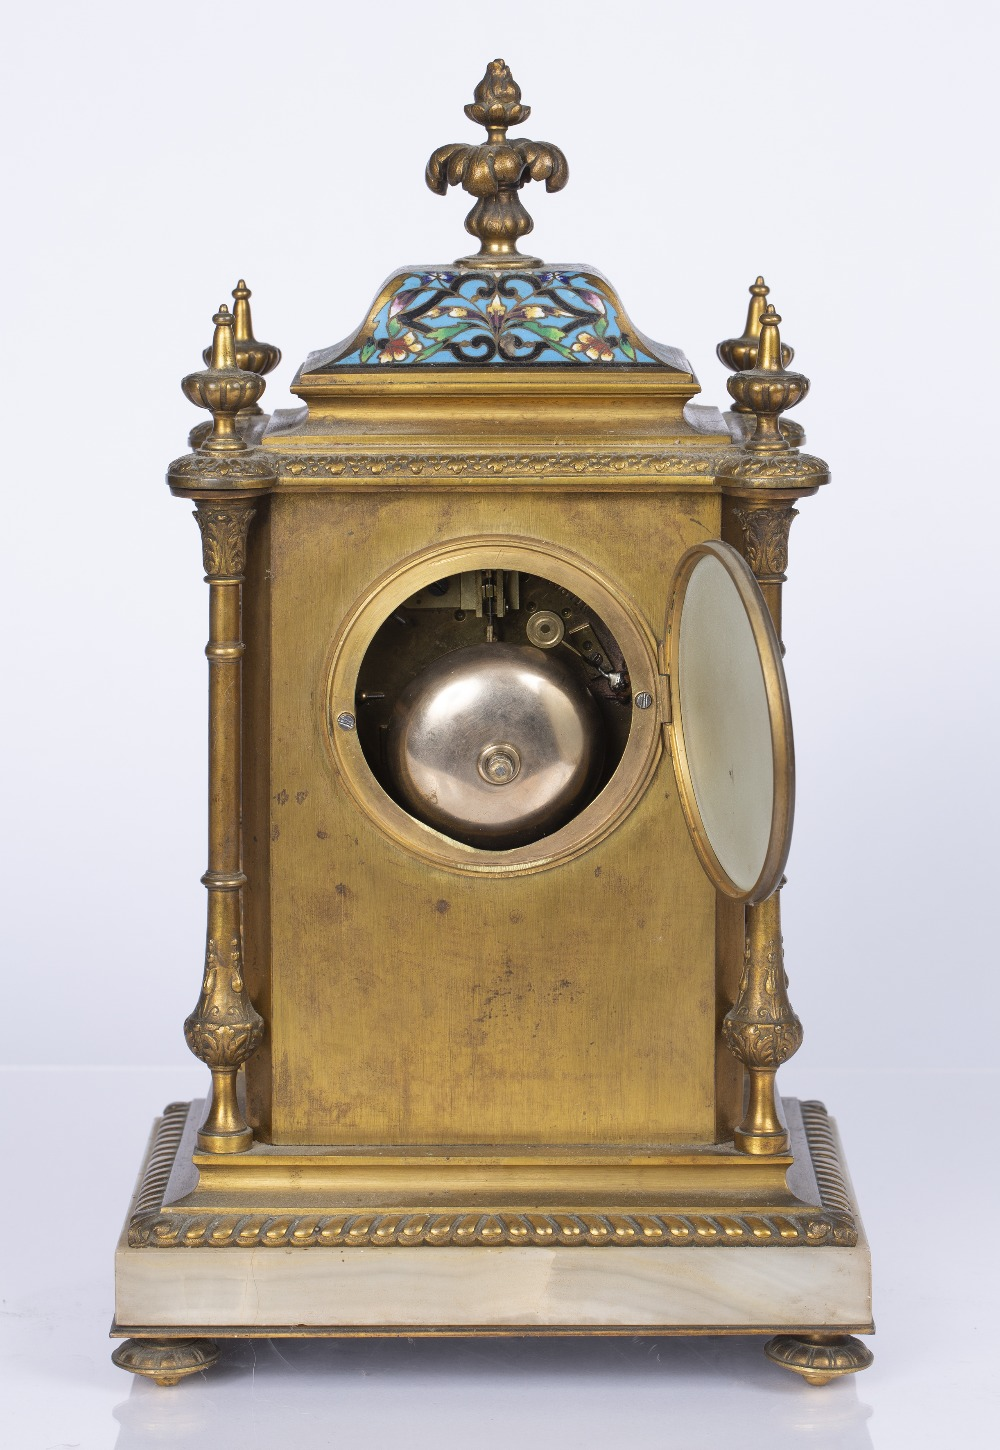 A VICTORIAN GILT BRASS AND POLYCHROME CLOISONNE ENAMEL MANTEL CLOCK the pale agate dial with gilt - Image 4 of 4